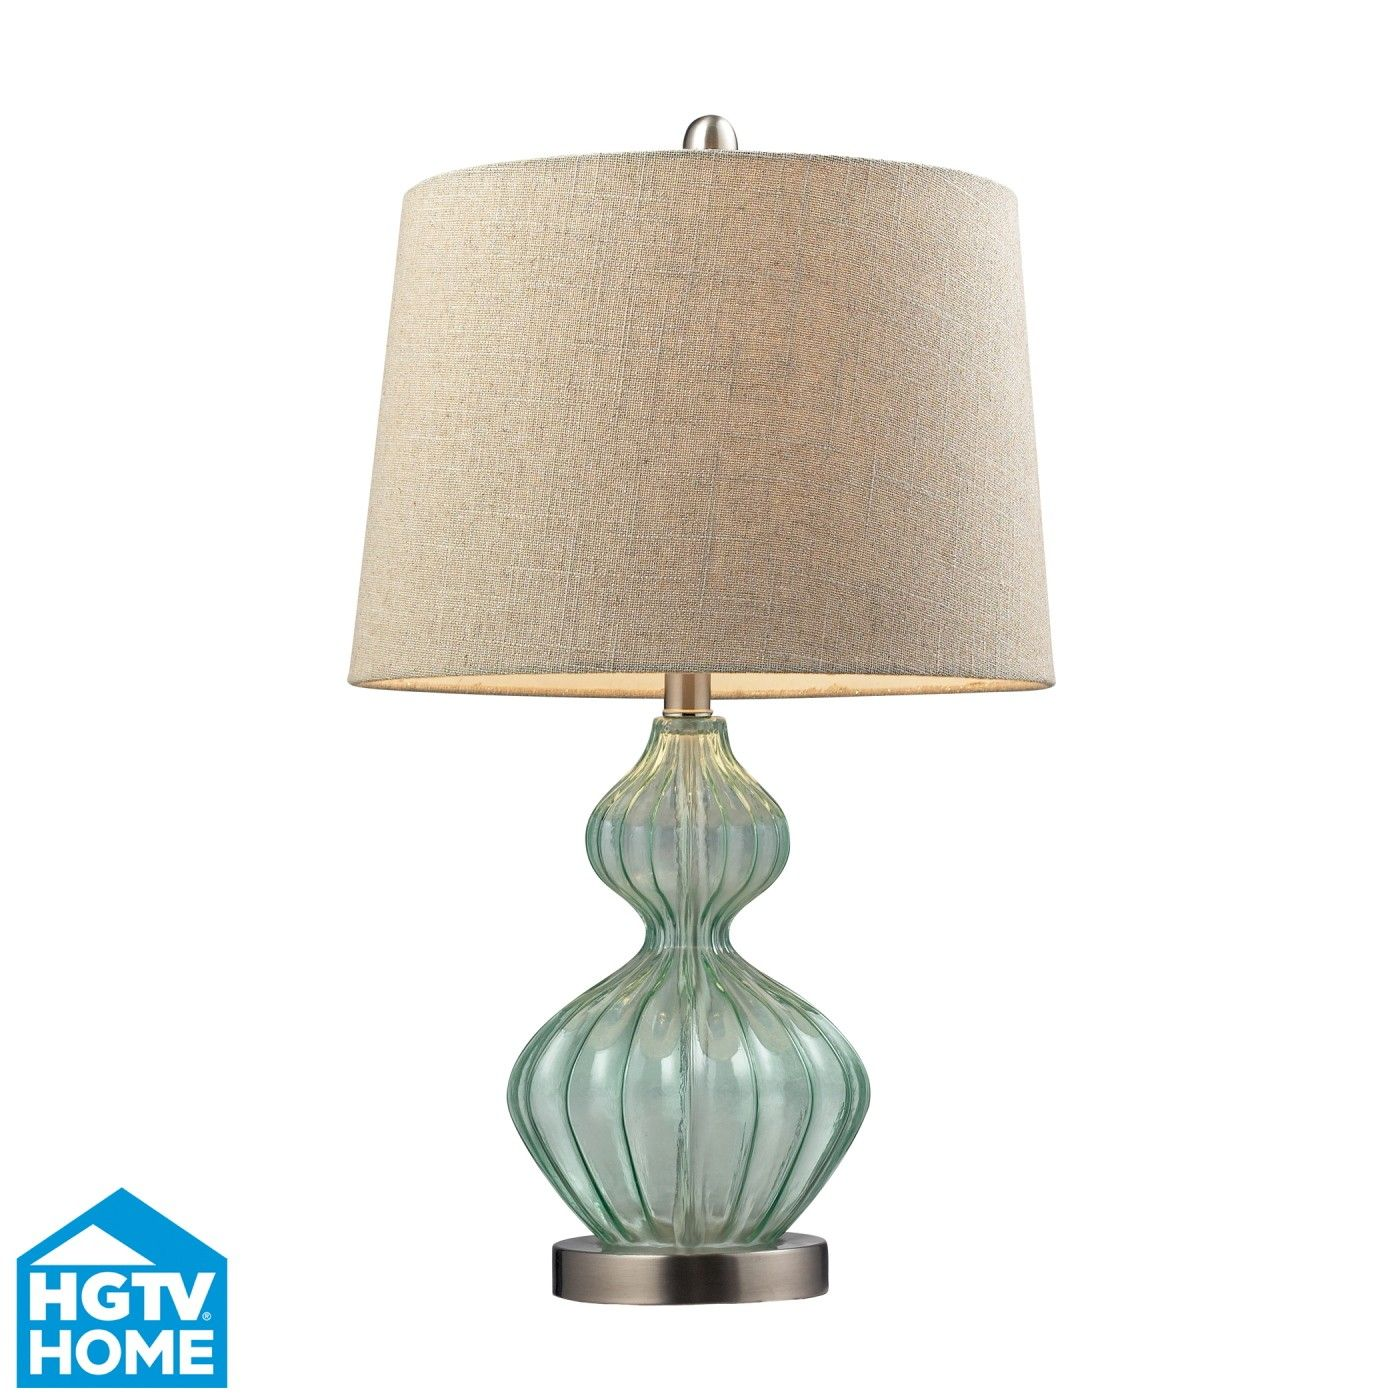 pale sea green smoked glass table lamp from hgtv a. Black Bedroom Furniture Sets. Home Design Ideas